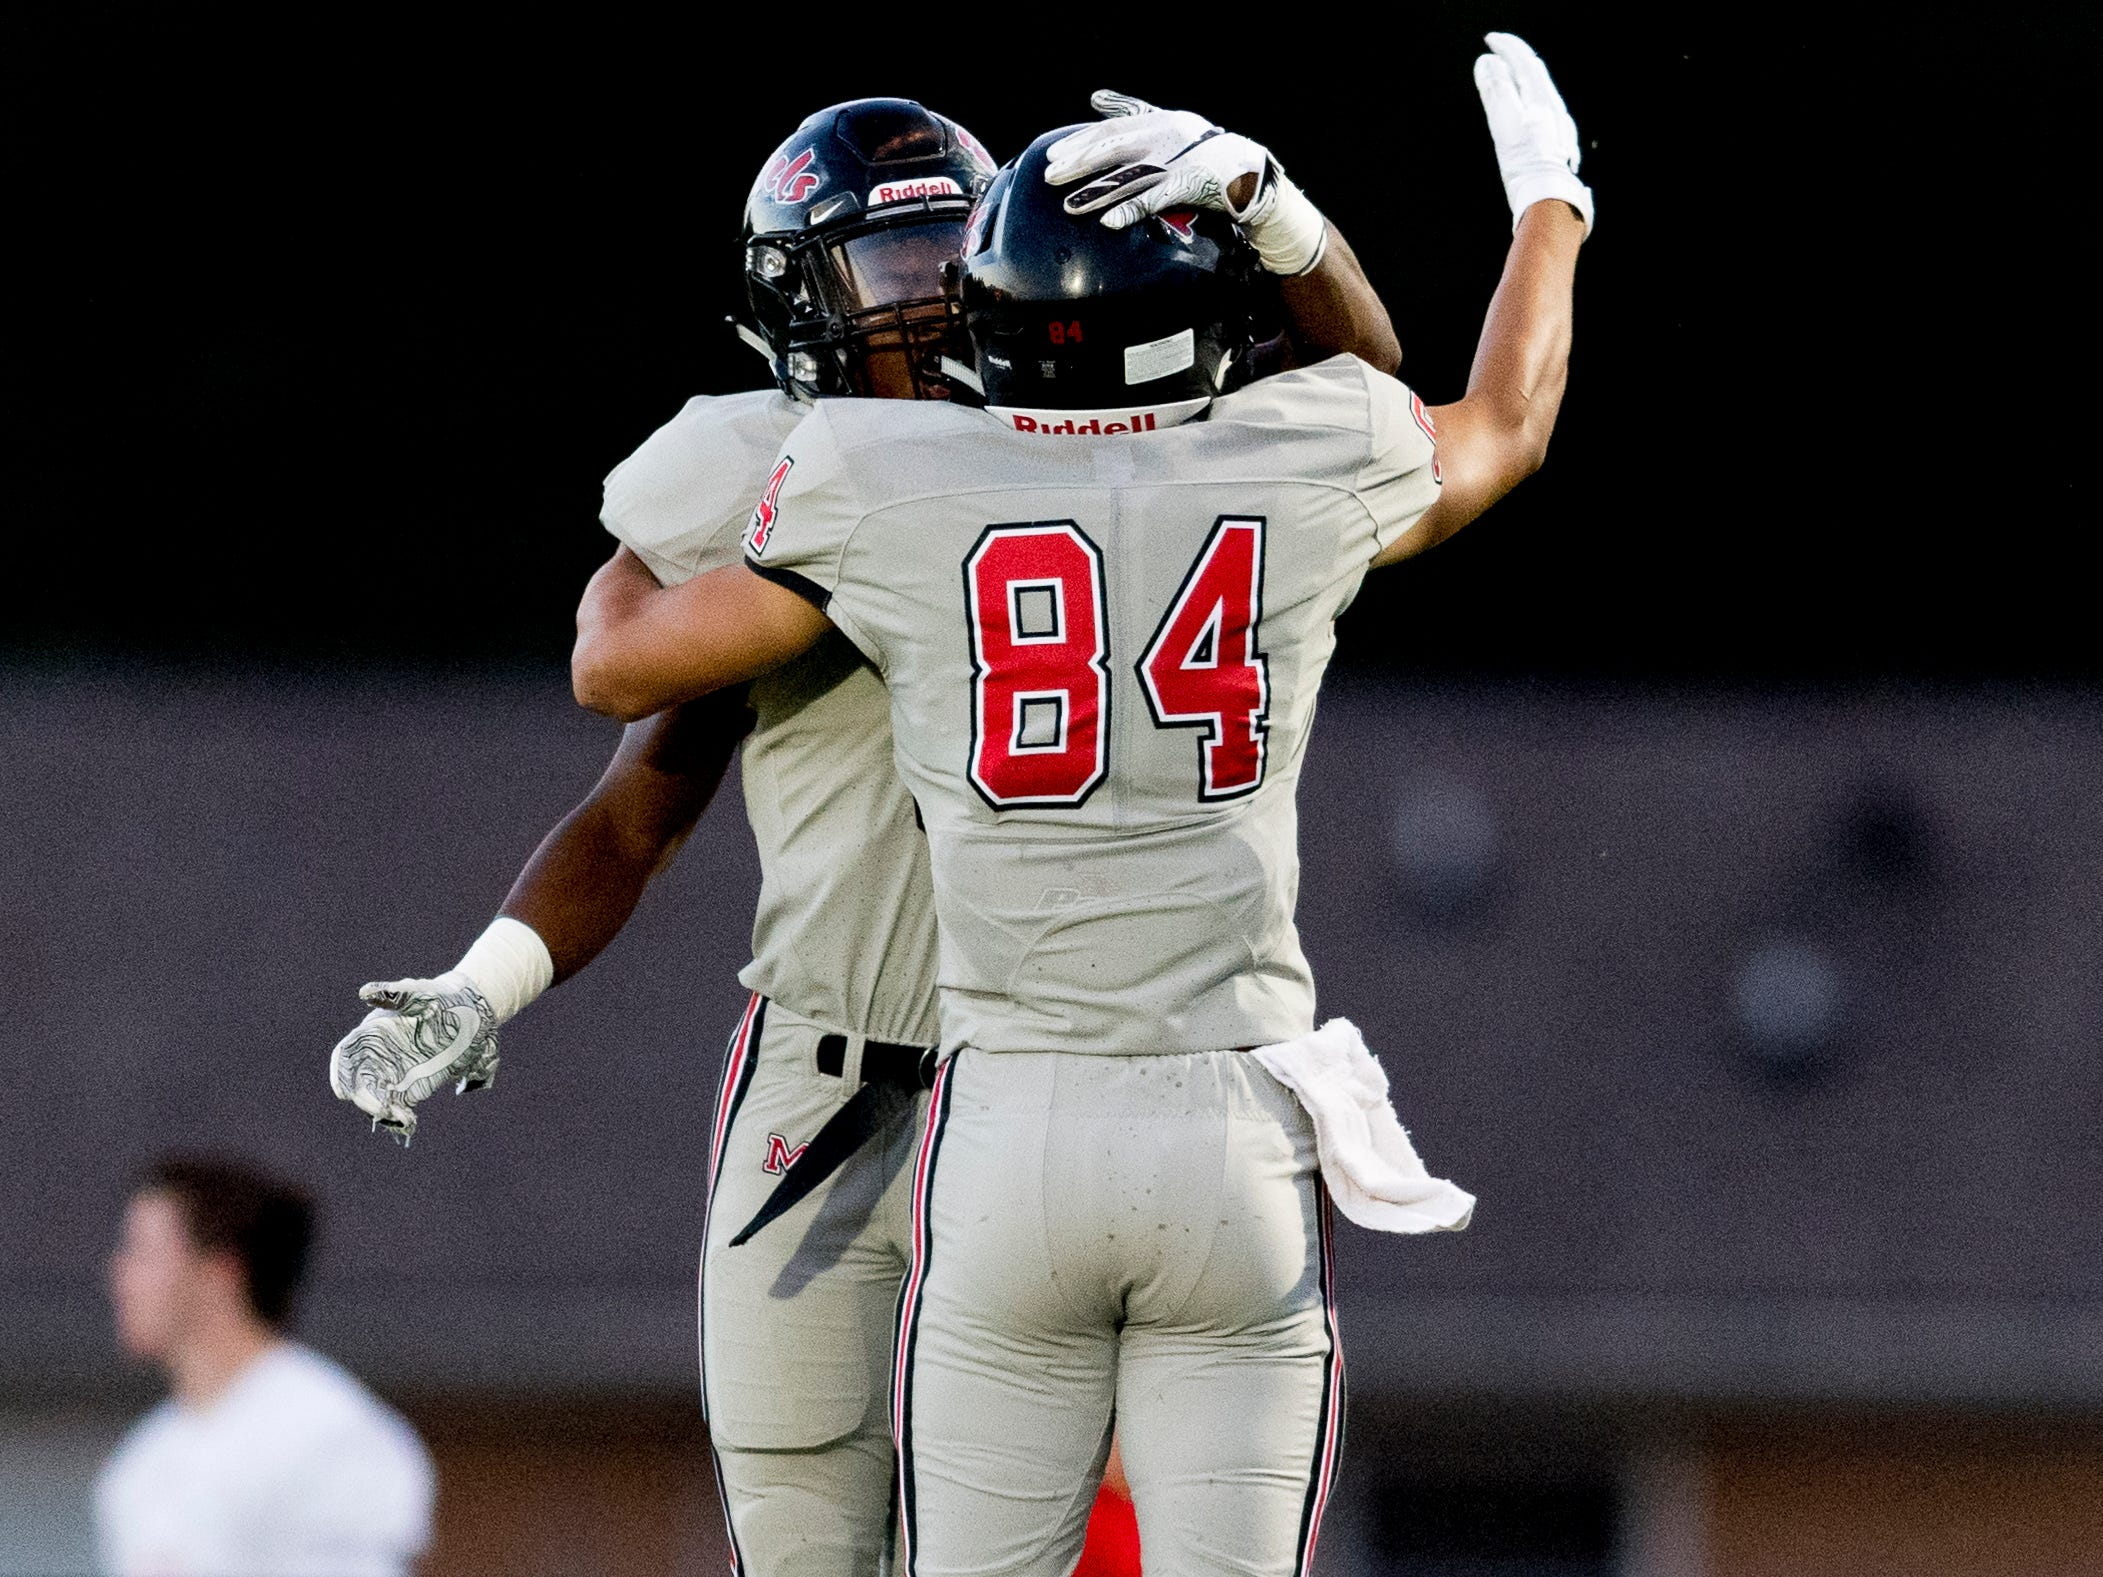 Maryville's A.J. Davis (3) is congratulated by Brayden Anderson (84) on his touchdown against William Blount during the Blount County football jamboree at William Blount High School in Maryville, Tennessee on Friday, August 10, 2018.